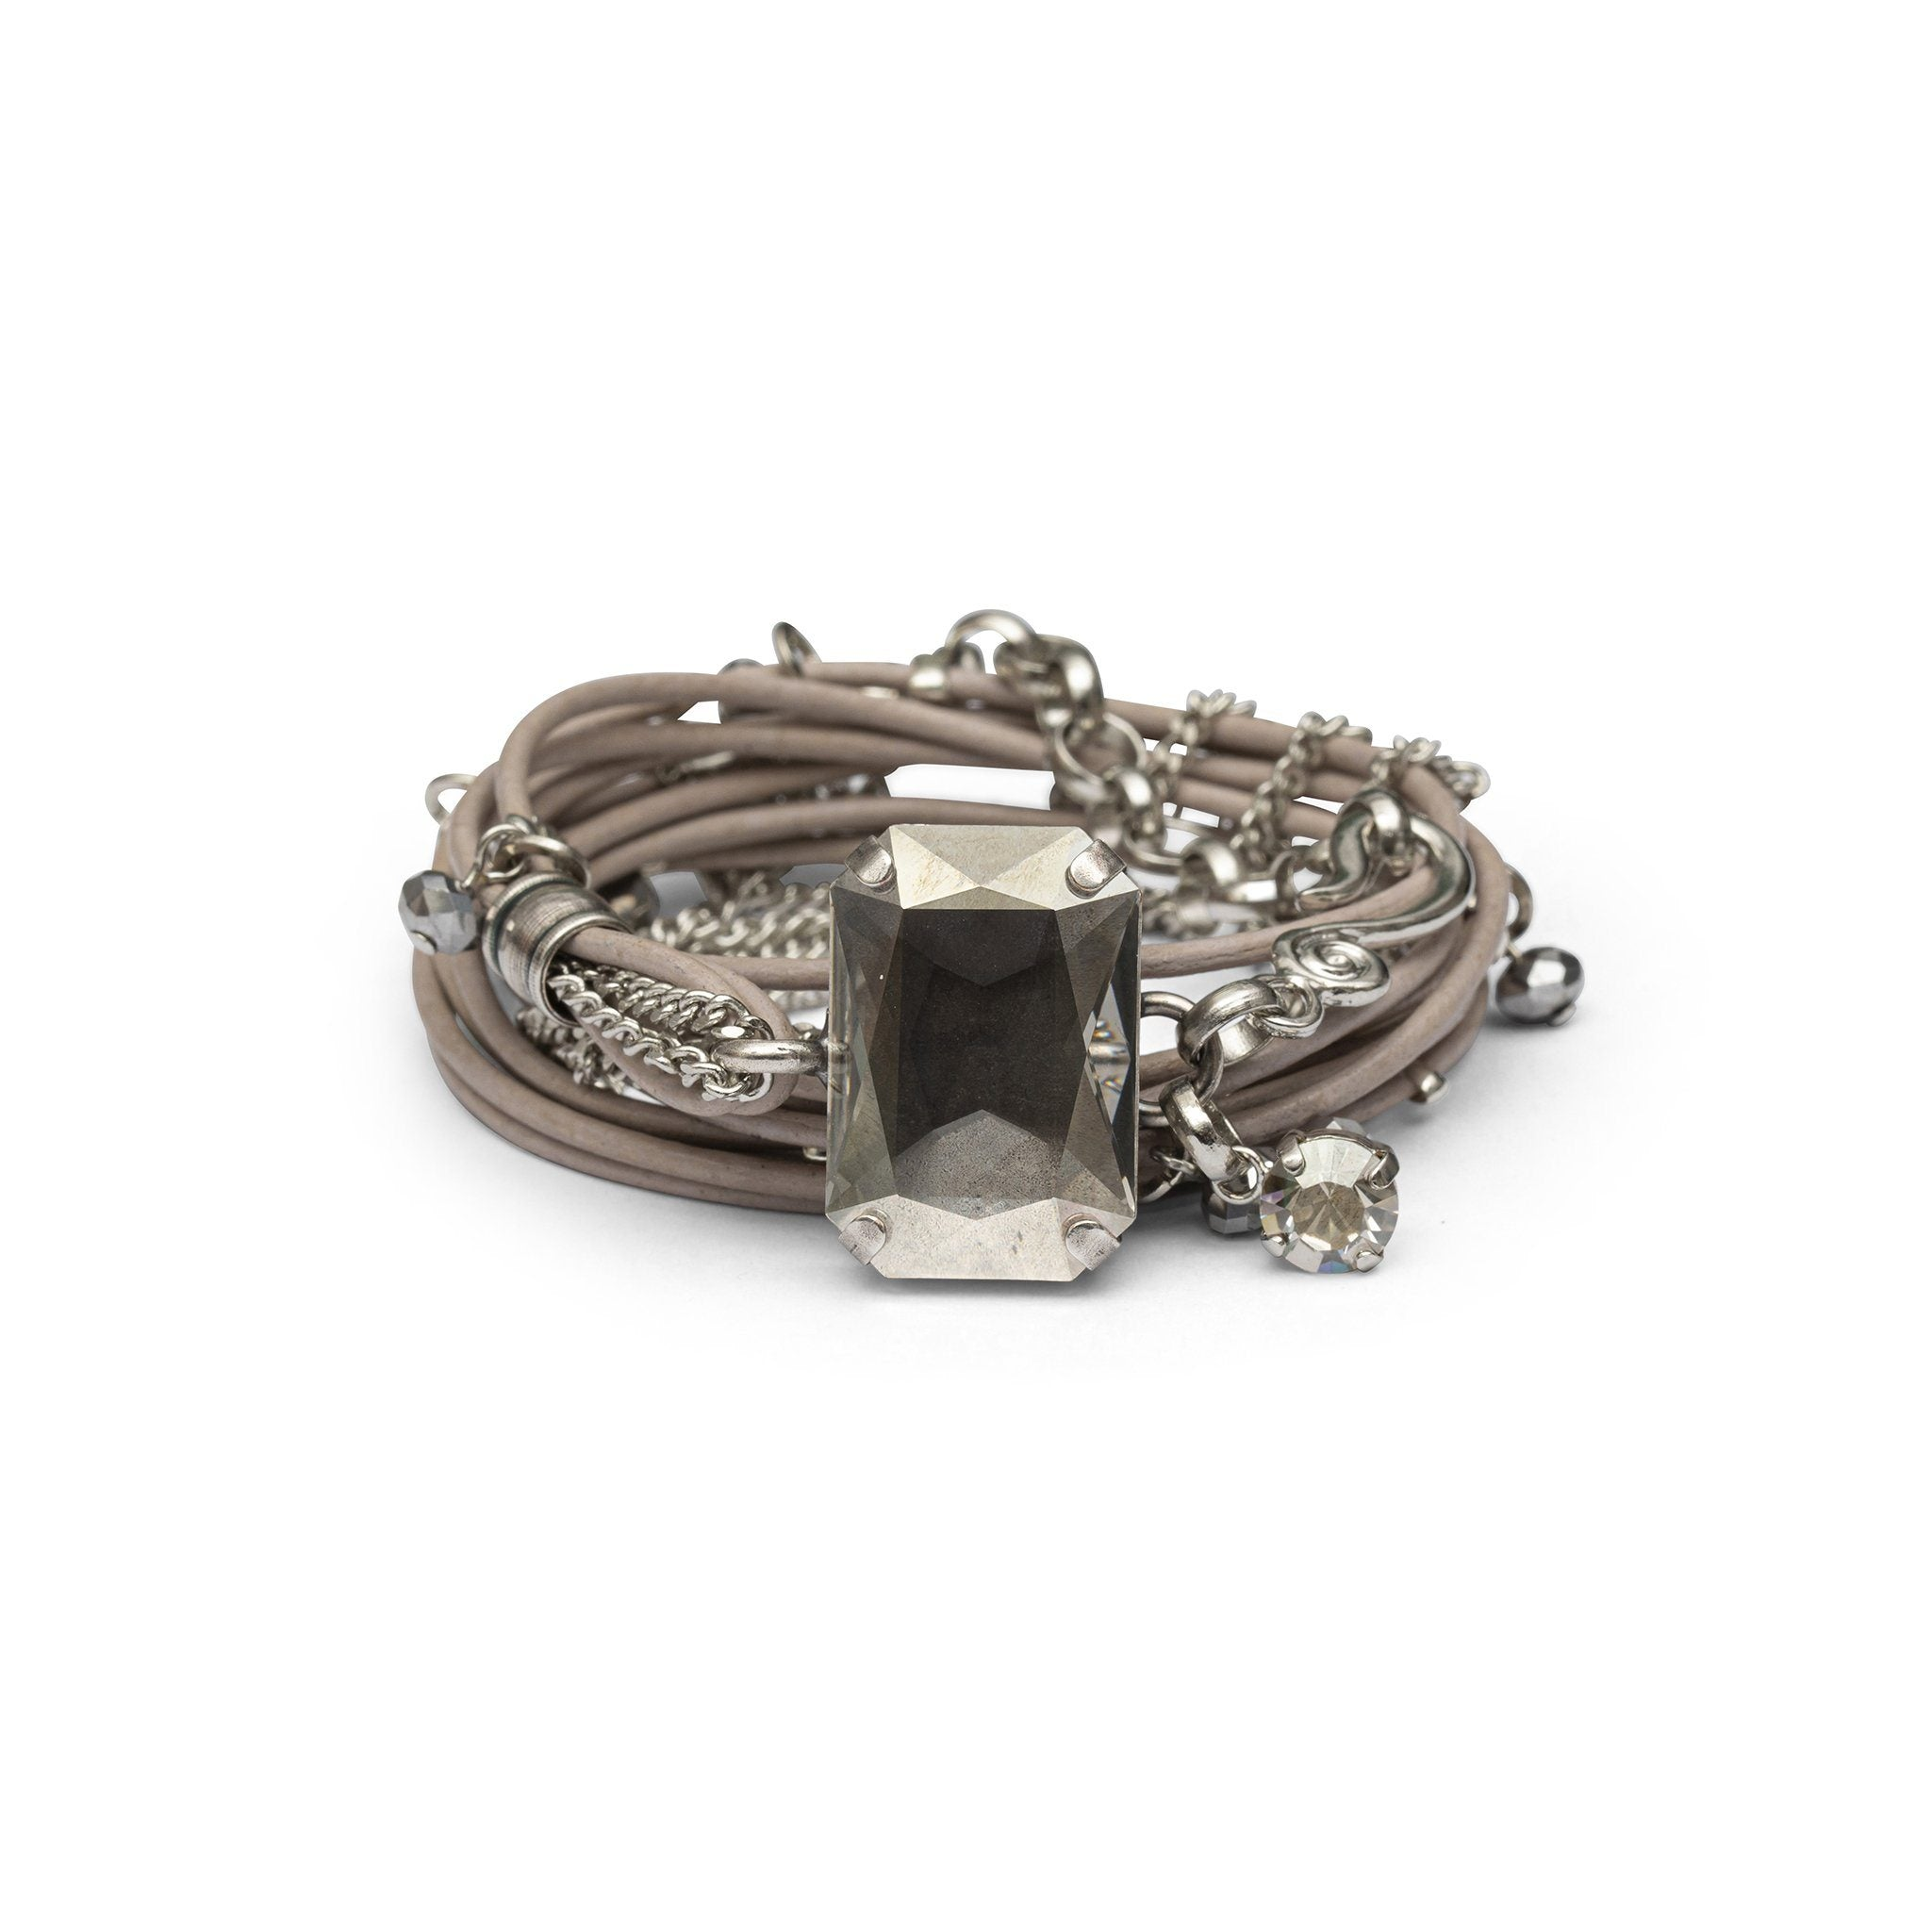 Stardust Leather Bracelet - Taupe & Silver